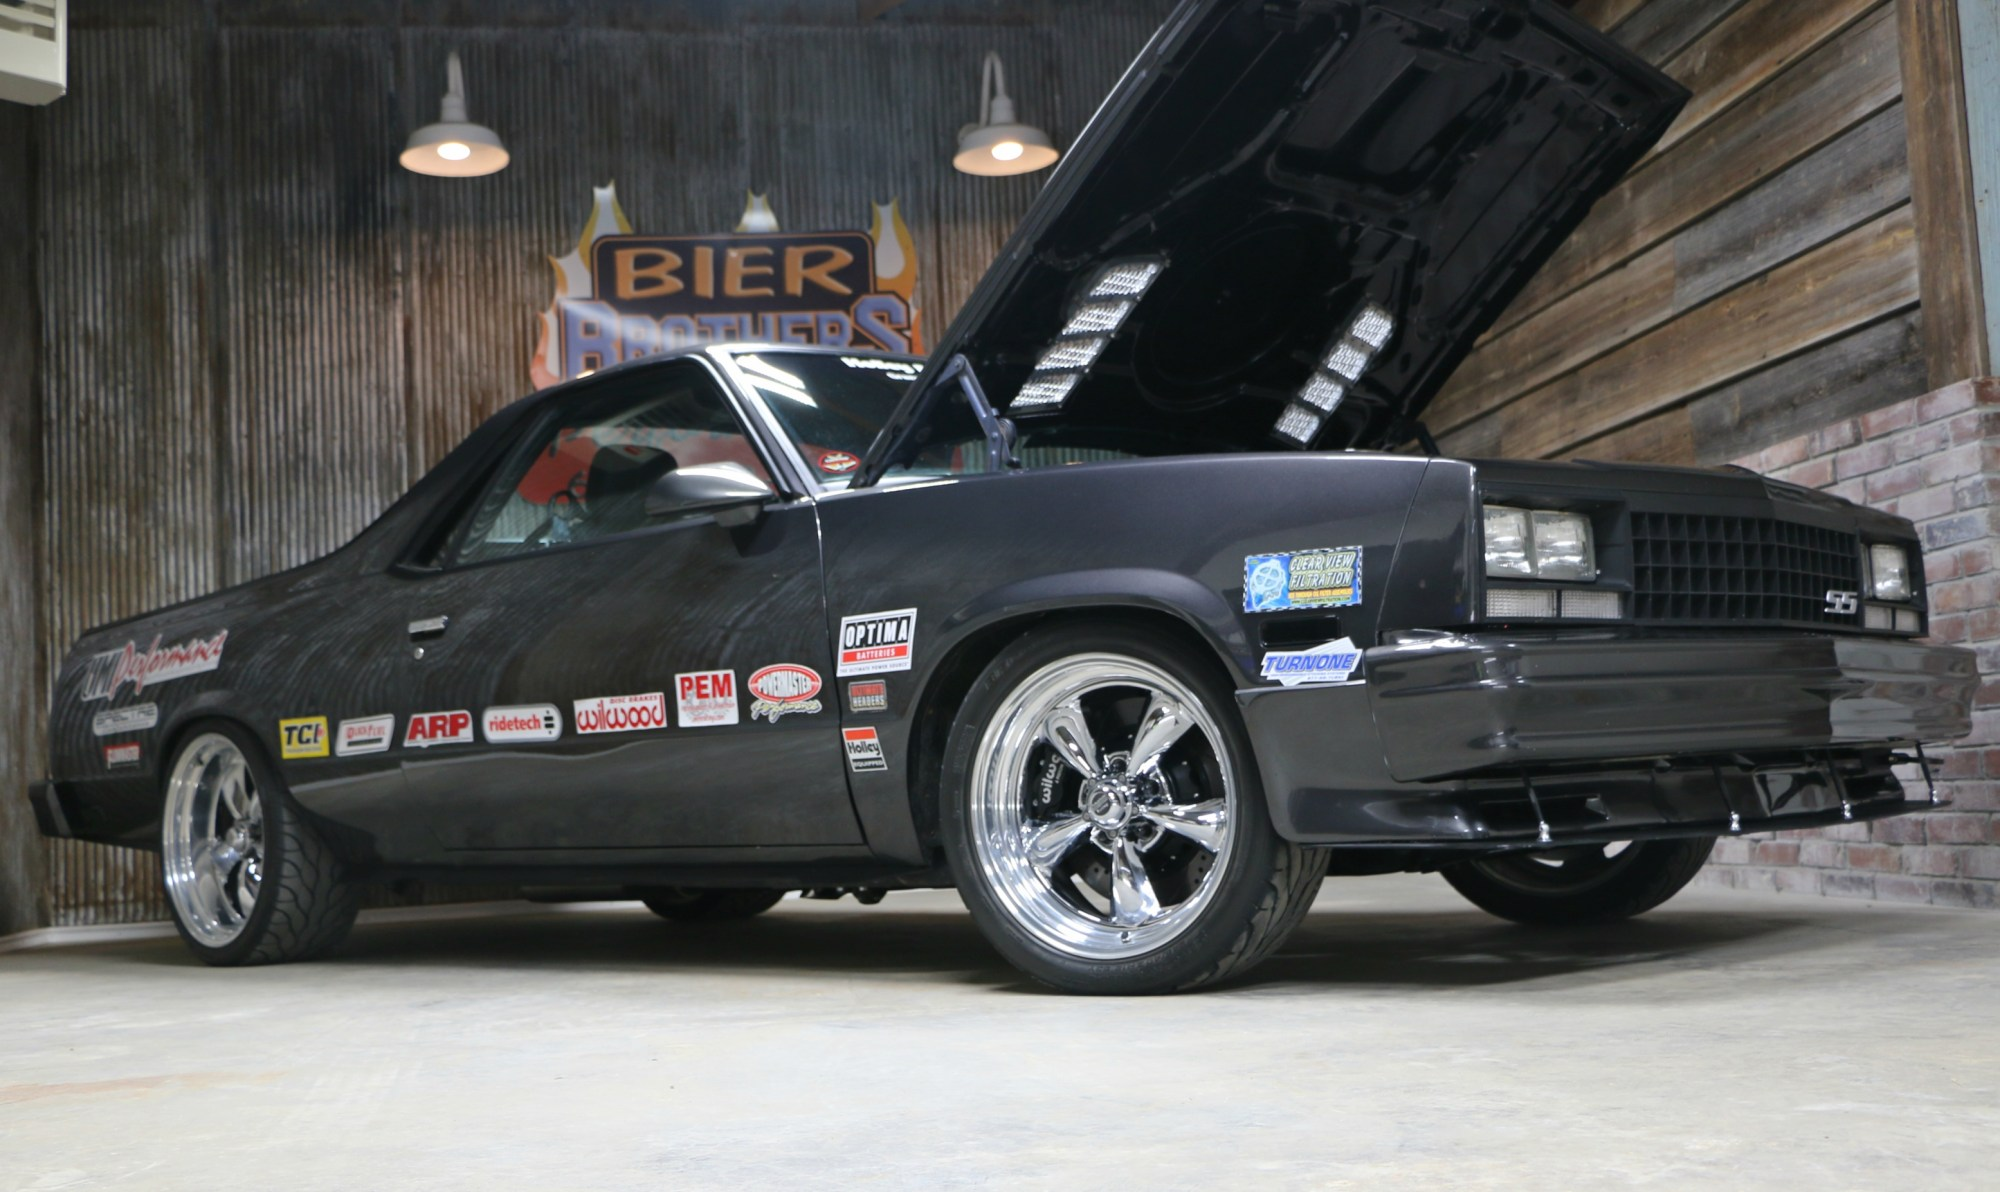 hight resolution of this is the new el camino built by greg cragg it s been created to auto cross drag race and cruise around town more details to follow